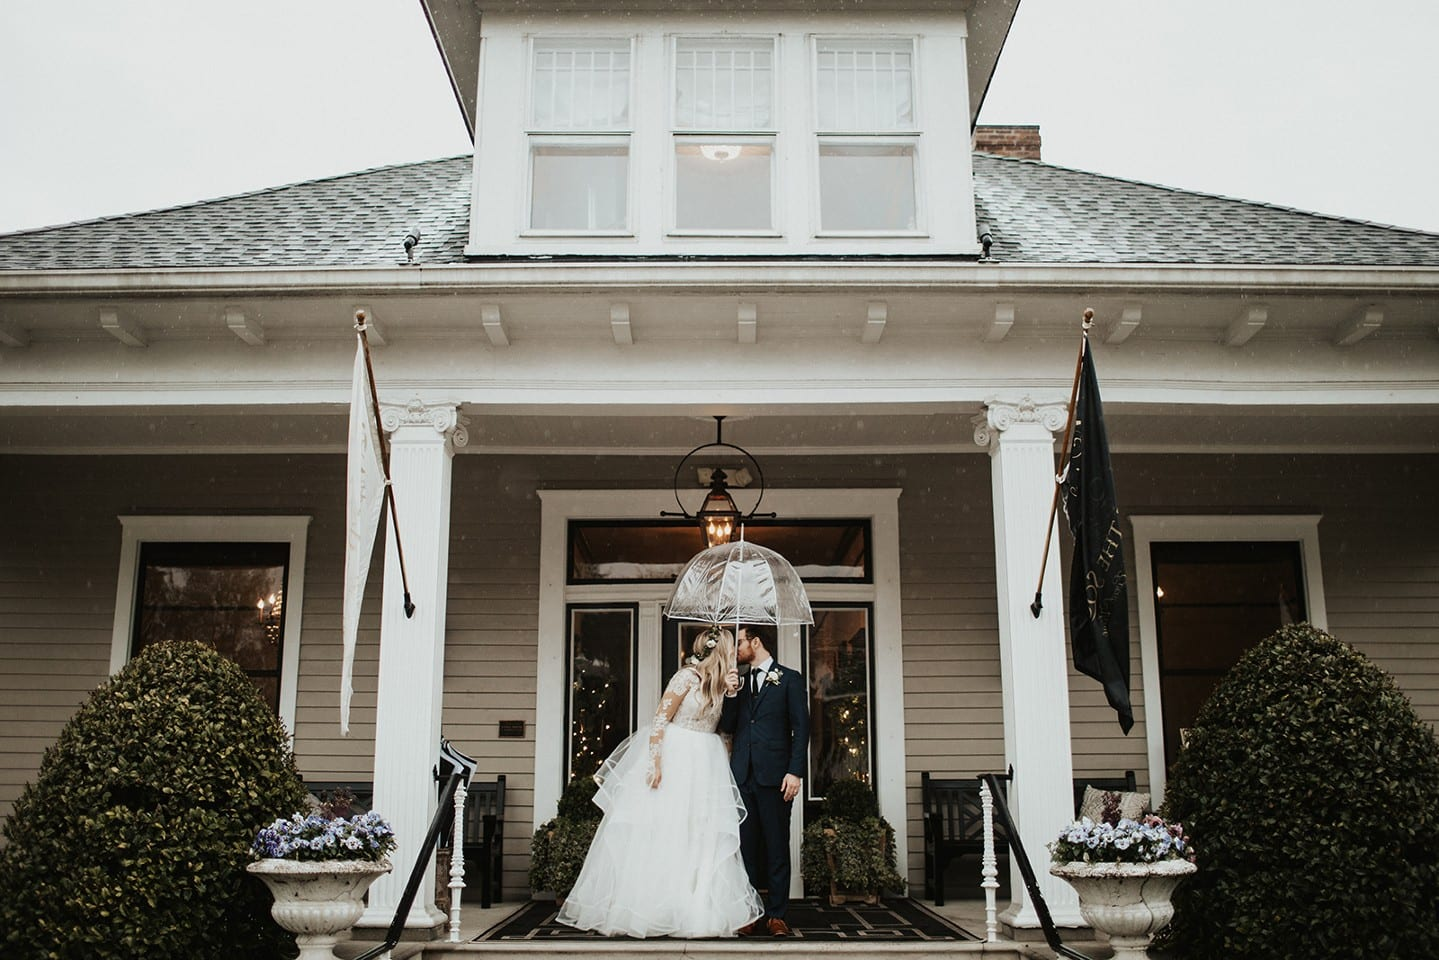 Nashville Garden Wedding + Event Venue | CJ's Off the Square